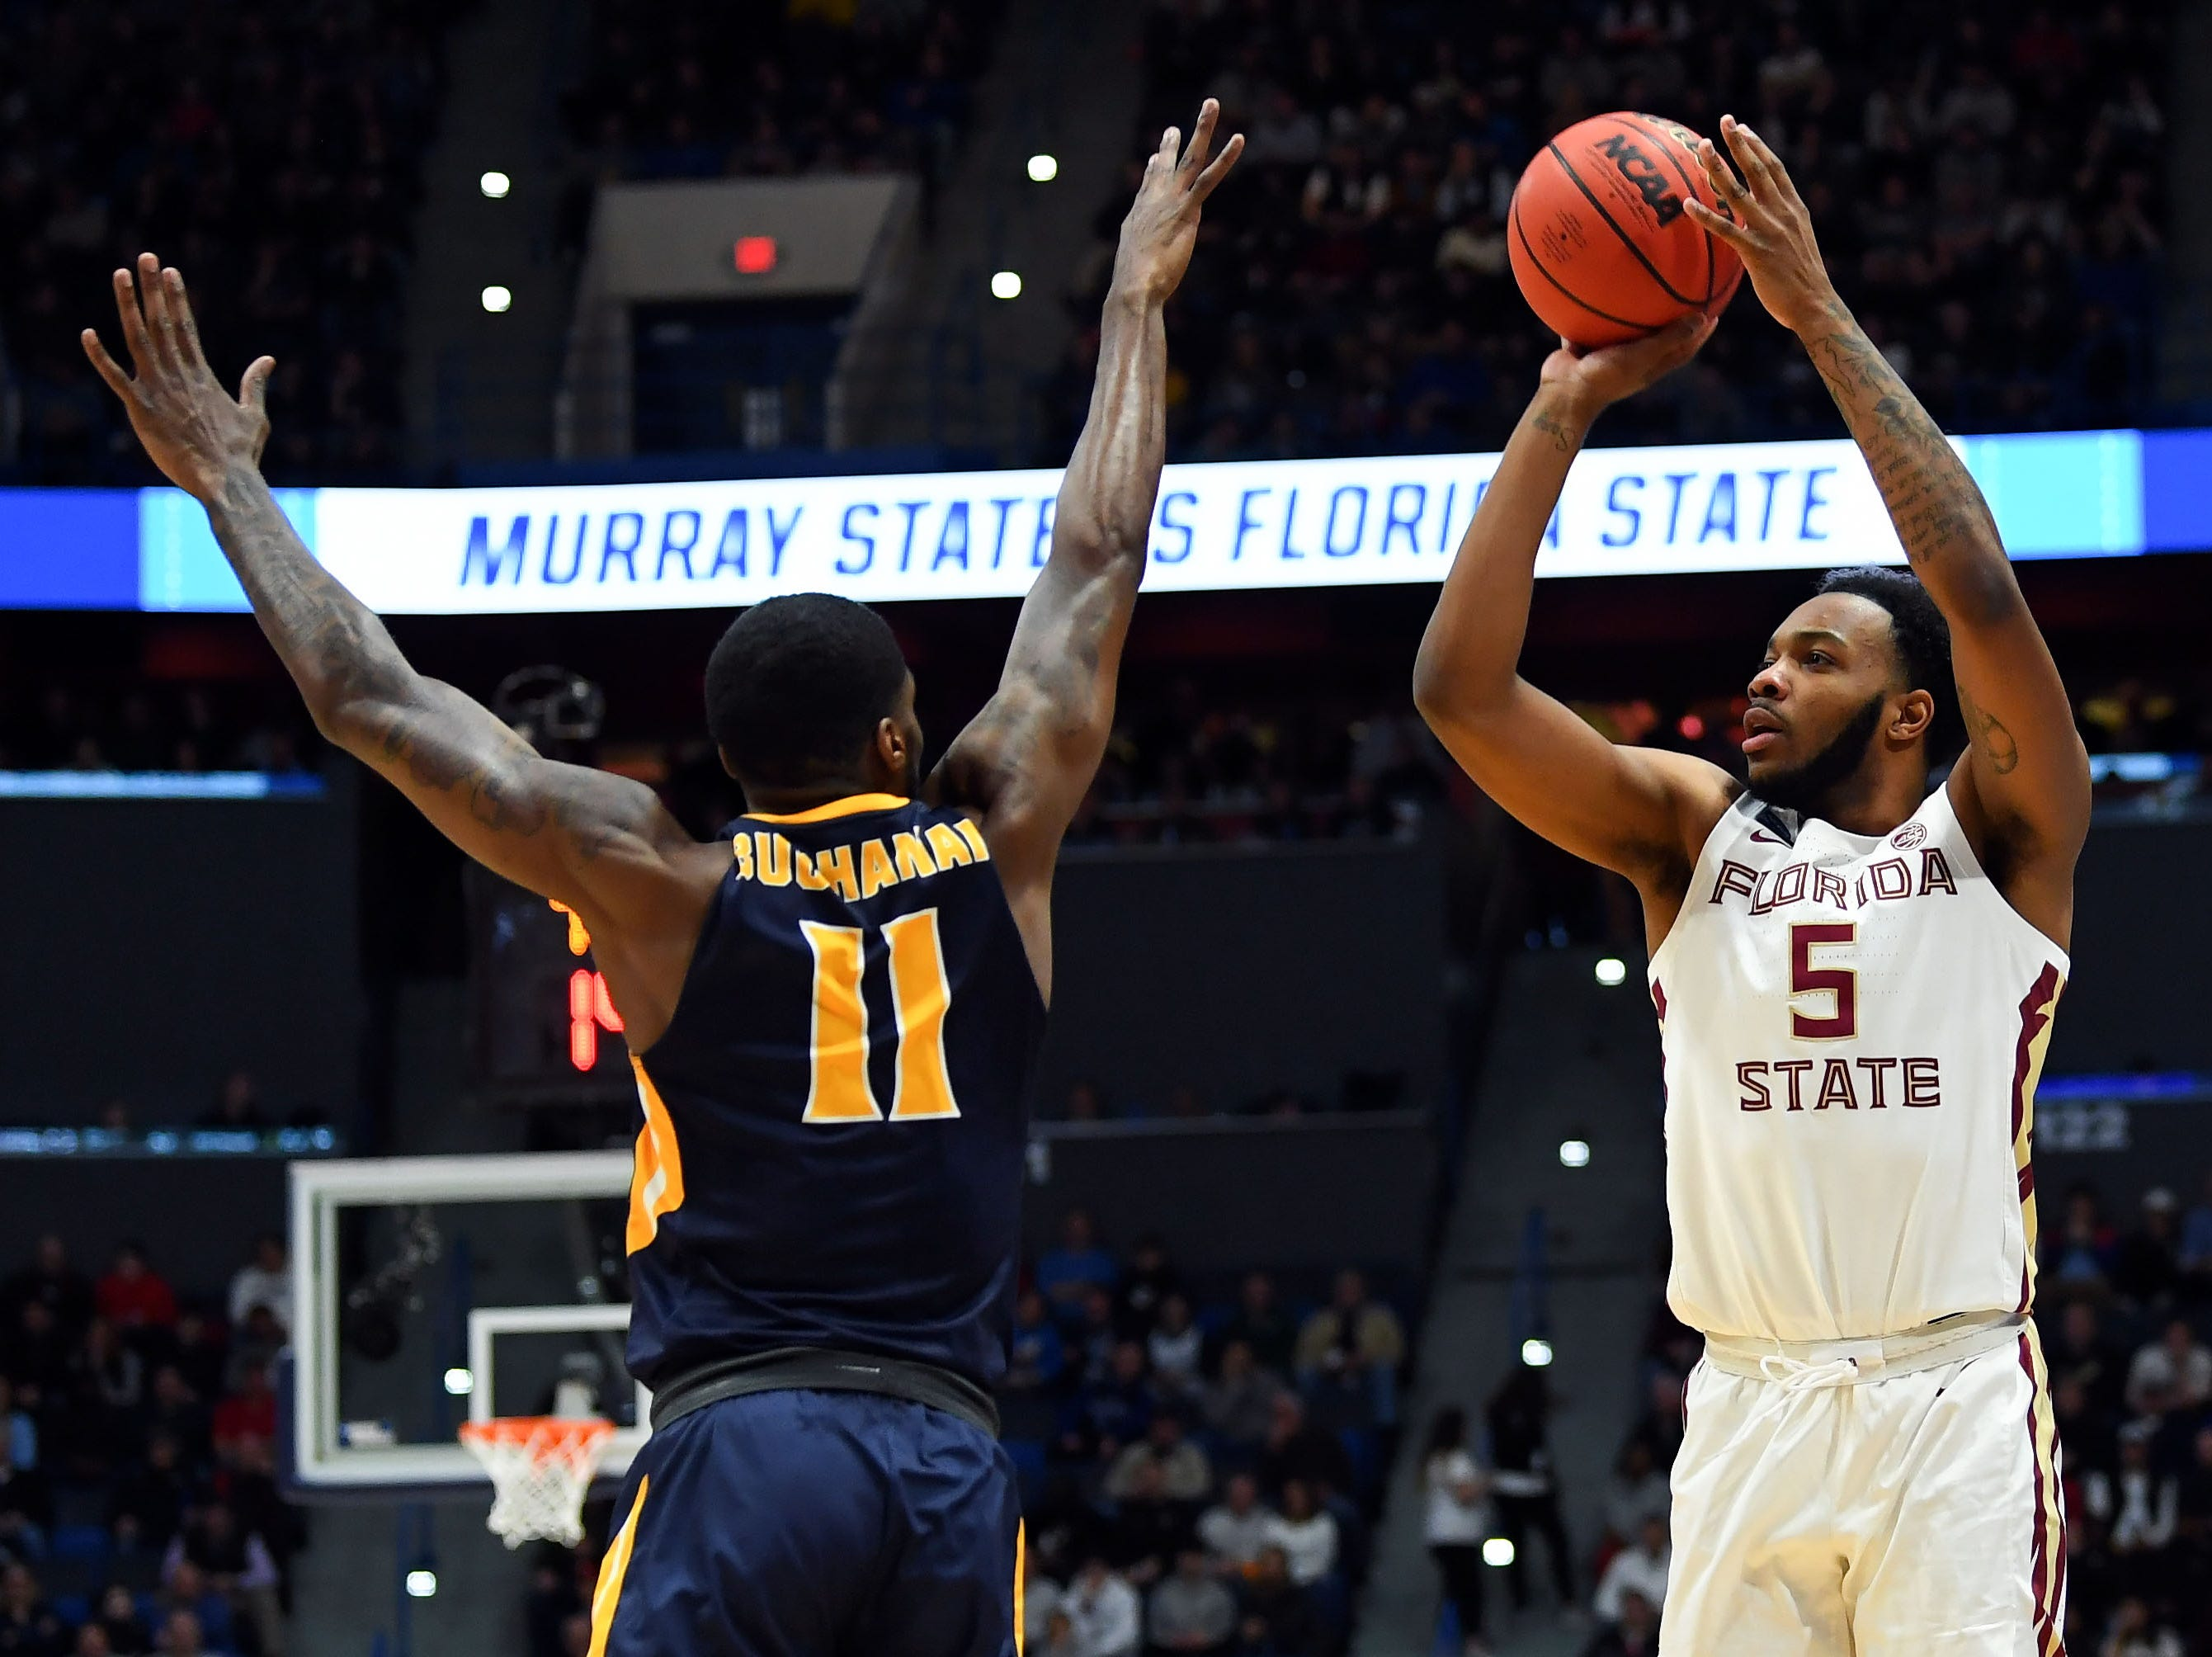 Mar 23, 2019; Hartford, CT, USA; Florida State Seminoles guard PJ Savoy (5) attempt a basket over Murray State Racers guard Shaq Buchanan (11) during the first half of a game in the second round of the 2019 NCAA Tournament at XL Center. Mandatory Credit: Robert Deutsch-USA TODAY Sports